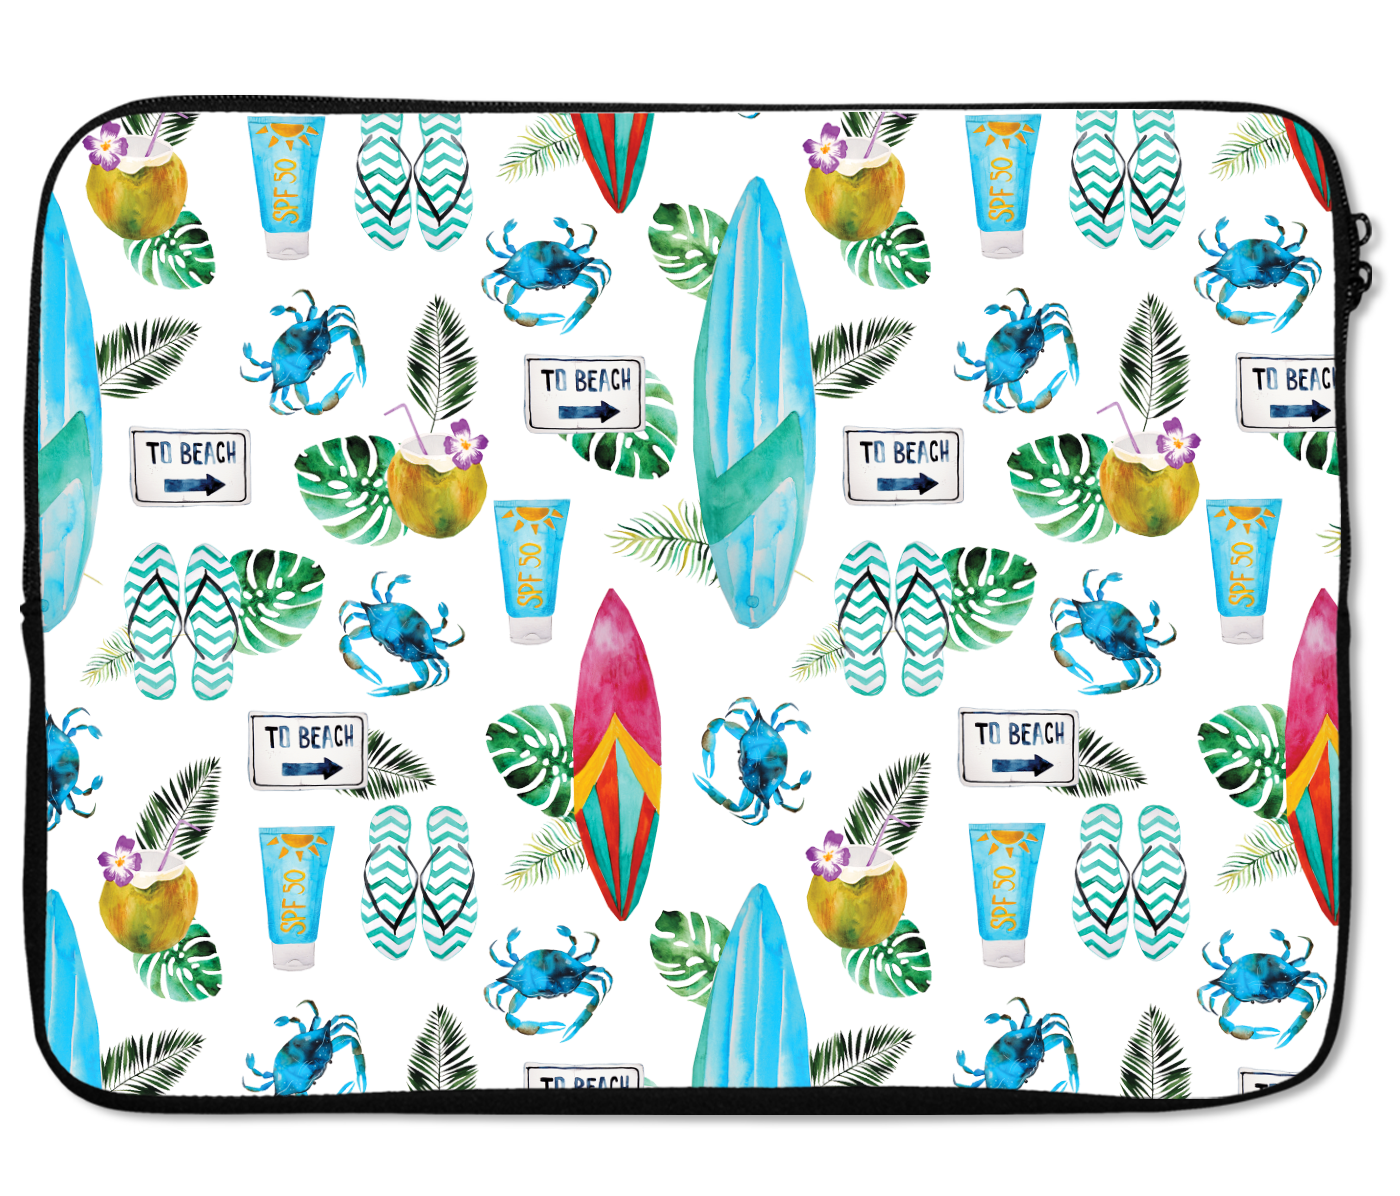 Laptops Tablet Sleeves Surf Board Crabs Beach Summer Pattern Premium Quality Neoprene Laptop Protection